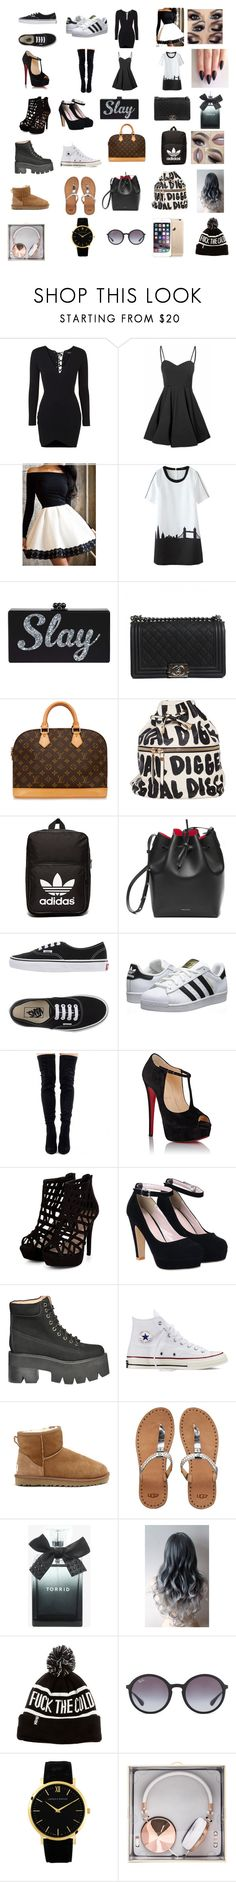 """""""A Few Things I Like"""" by infinitee-vibez on Polyvore featuring Topshop, Glamorous, Chanel, Louis Vuitton, adidas Originals, Vans, Christian Louboutin, Jeffrey Campbell, Converse and UGG Australia"""